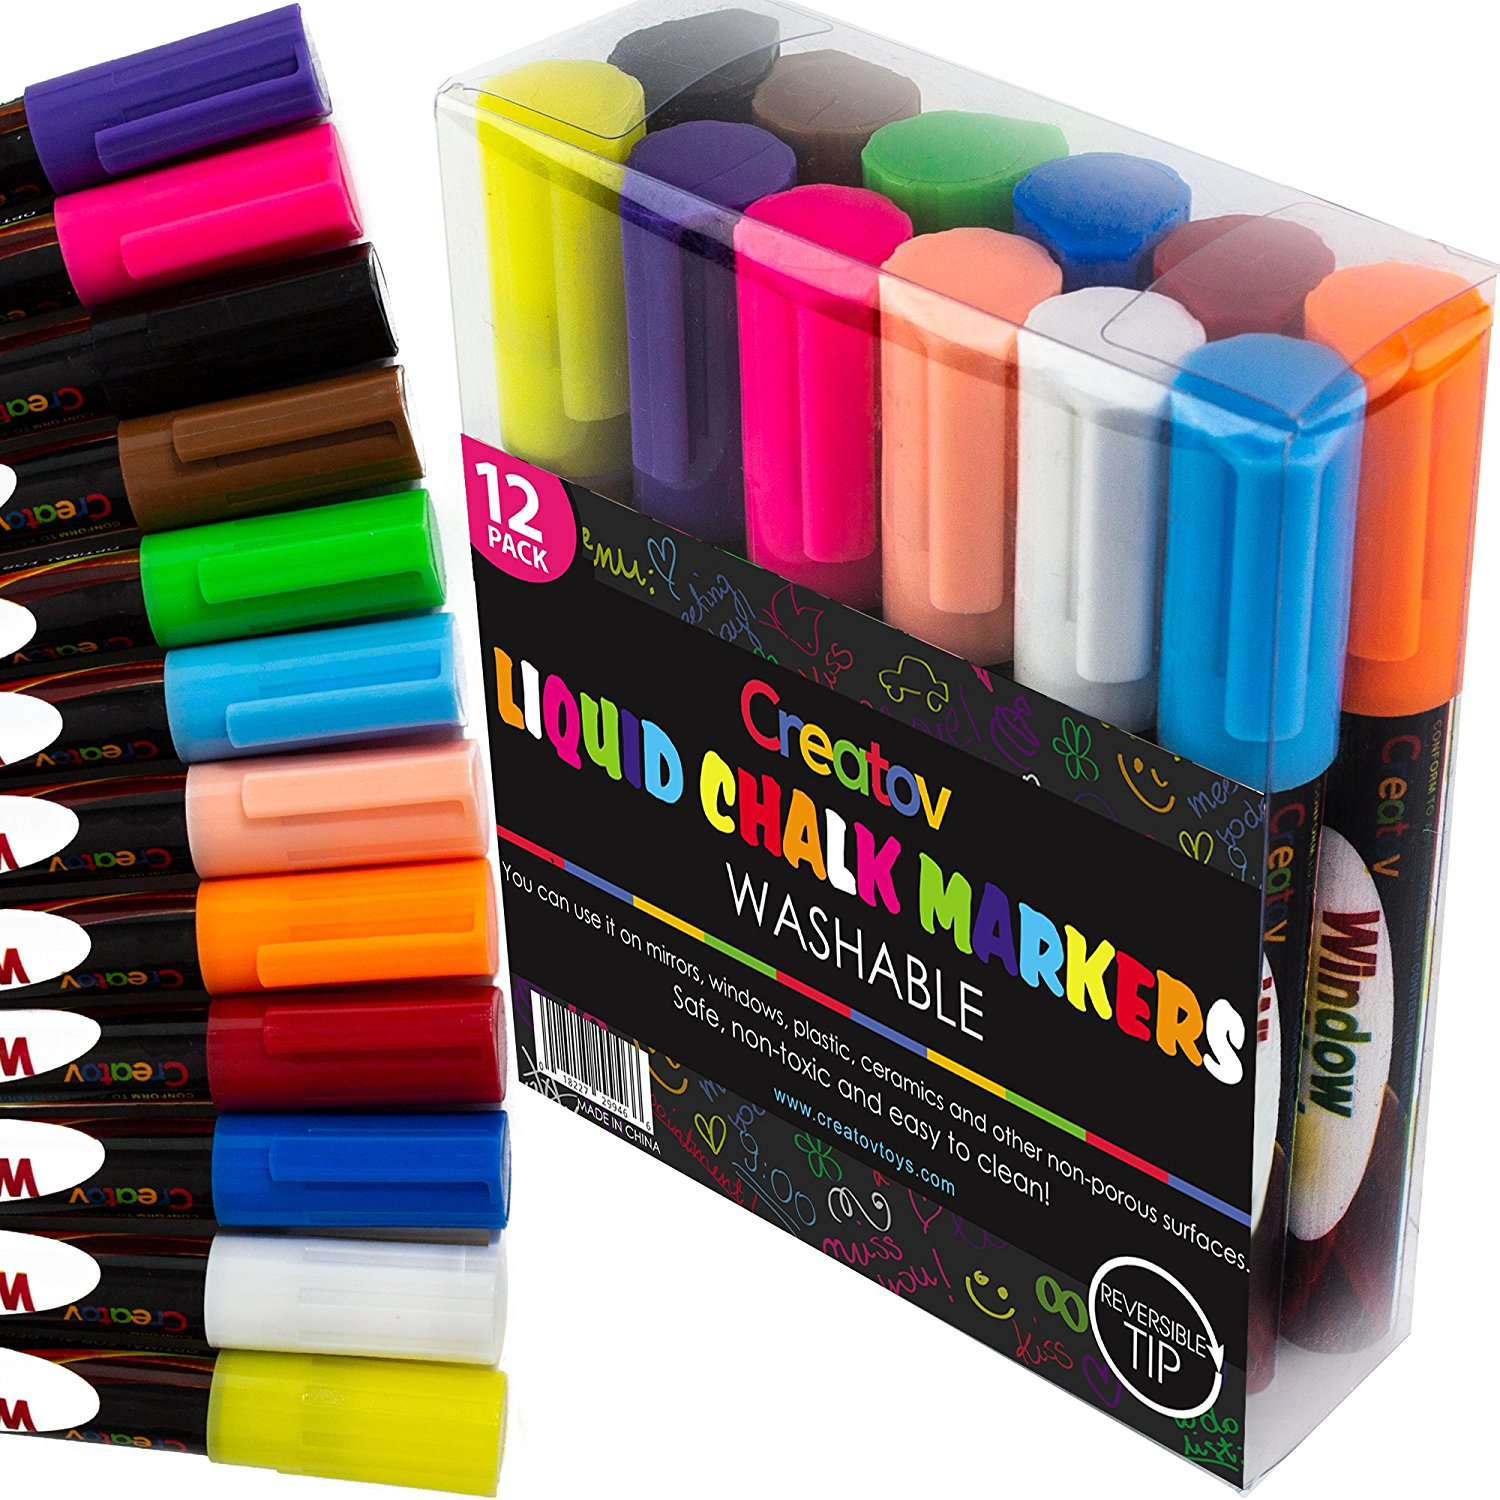 Liquid Chalk Window Markers 12 Colored Neon Safe Easy To Use Non Toxic Great For All Ages By Creatov Walmart Com Walmart Com